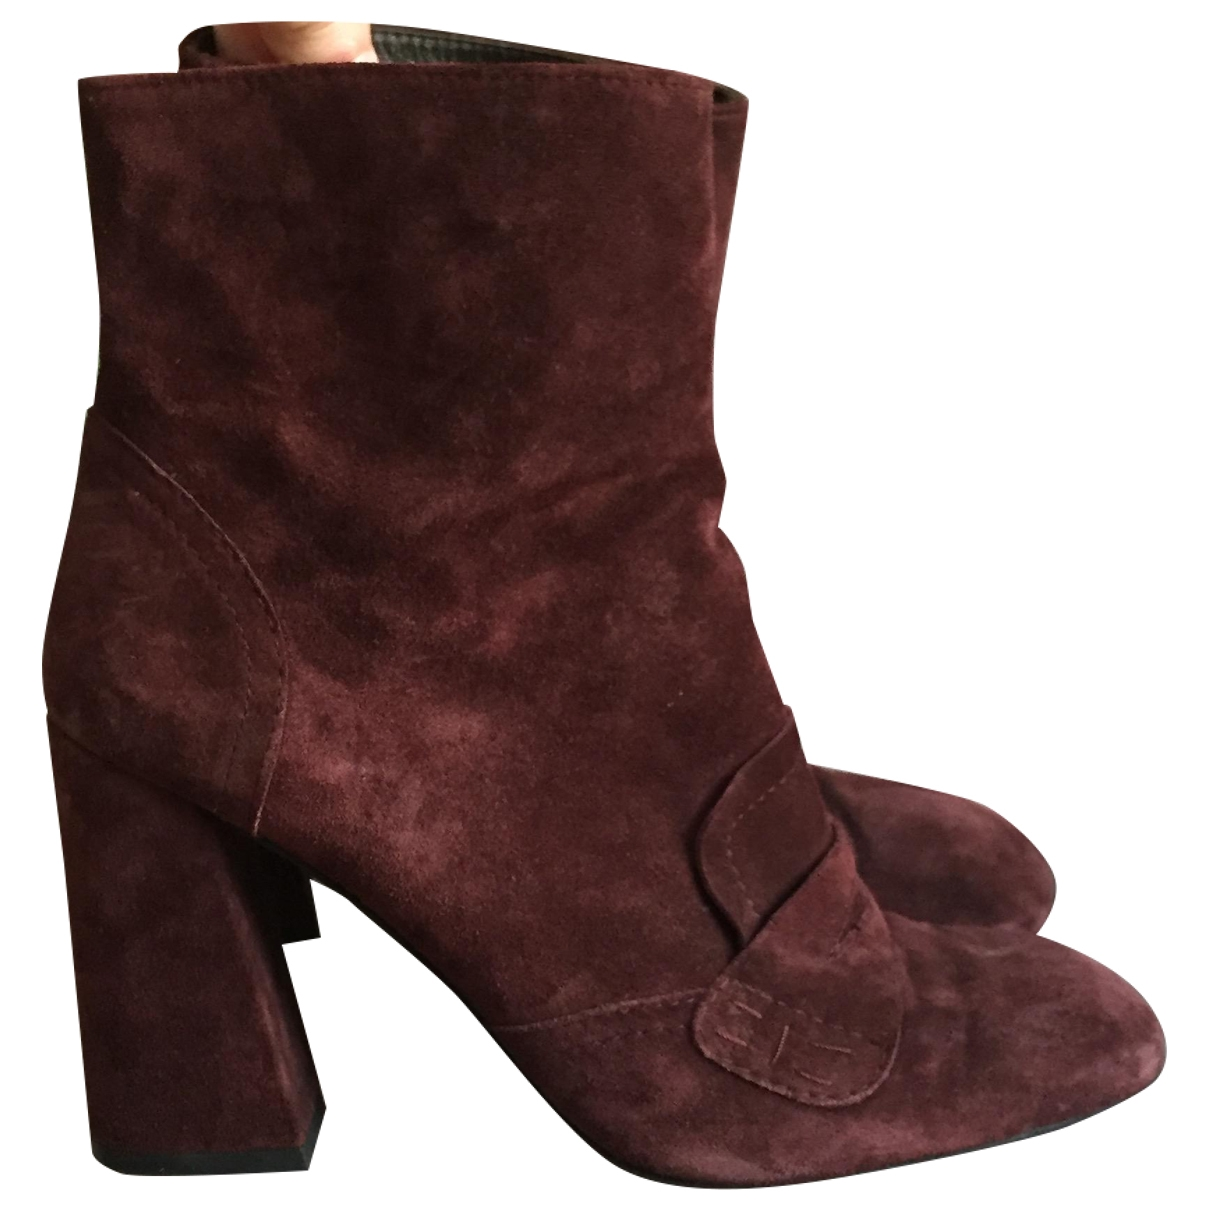 Stuart Weitzman \N Brown Suede Ankle boots for Women 8.5 US